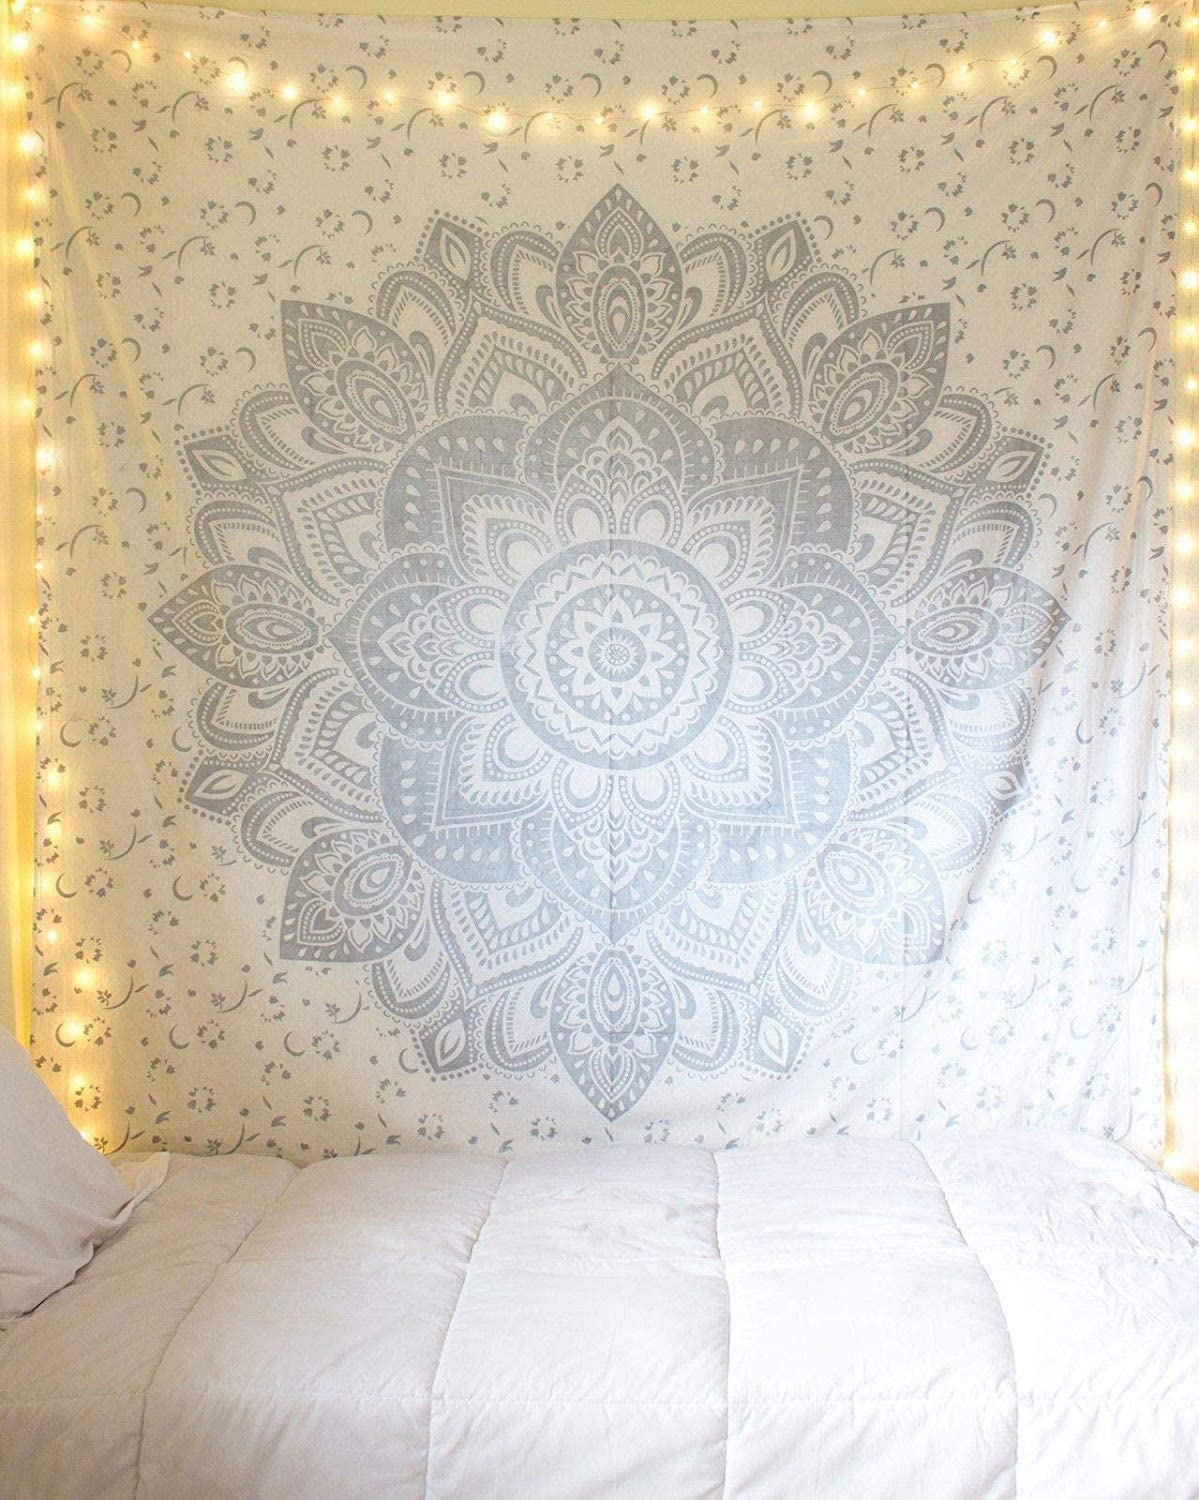 Silver Tapestry Wall Hanging Hippie Mandala Tapestry College Dorm Tapestry Mandala Tapestry Dorm Decor Indian Hippie Tapestry Bedspread Bedding Decor (Twin ( 54X85 inches approx), silver Flower)